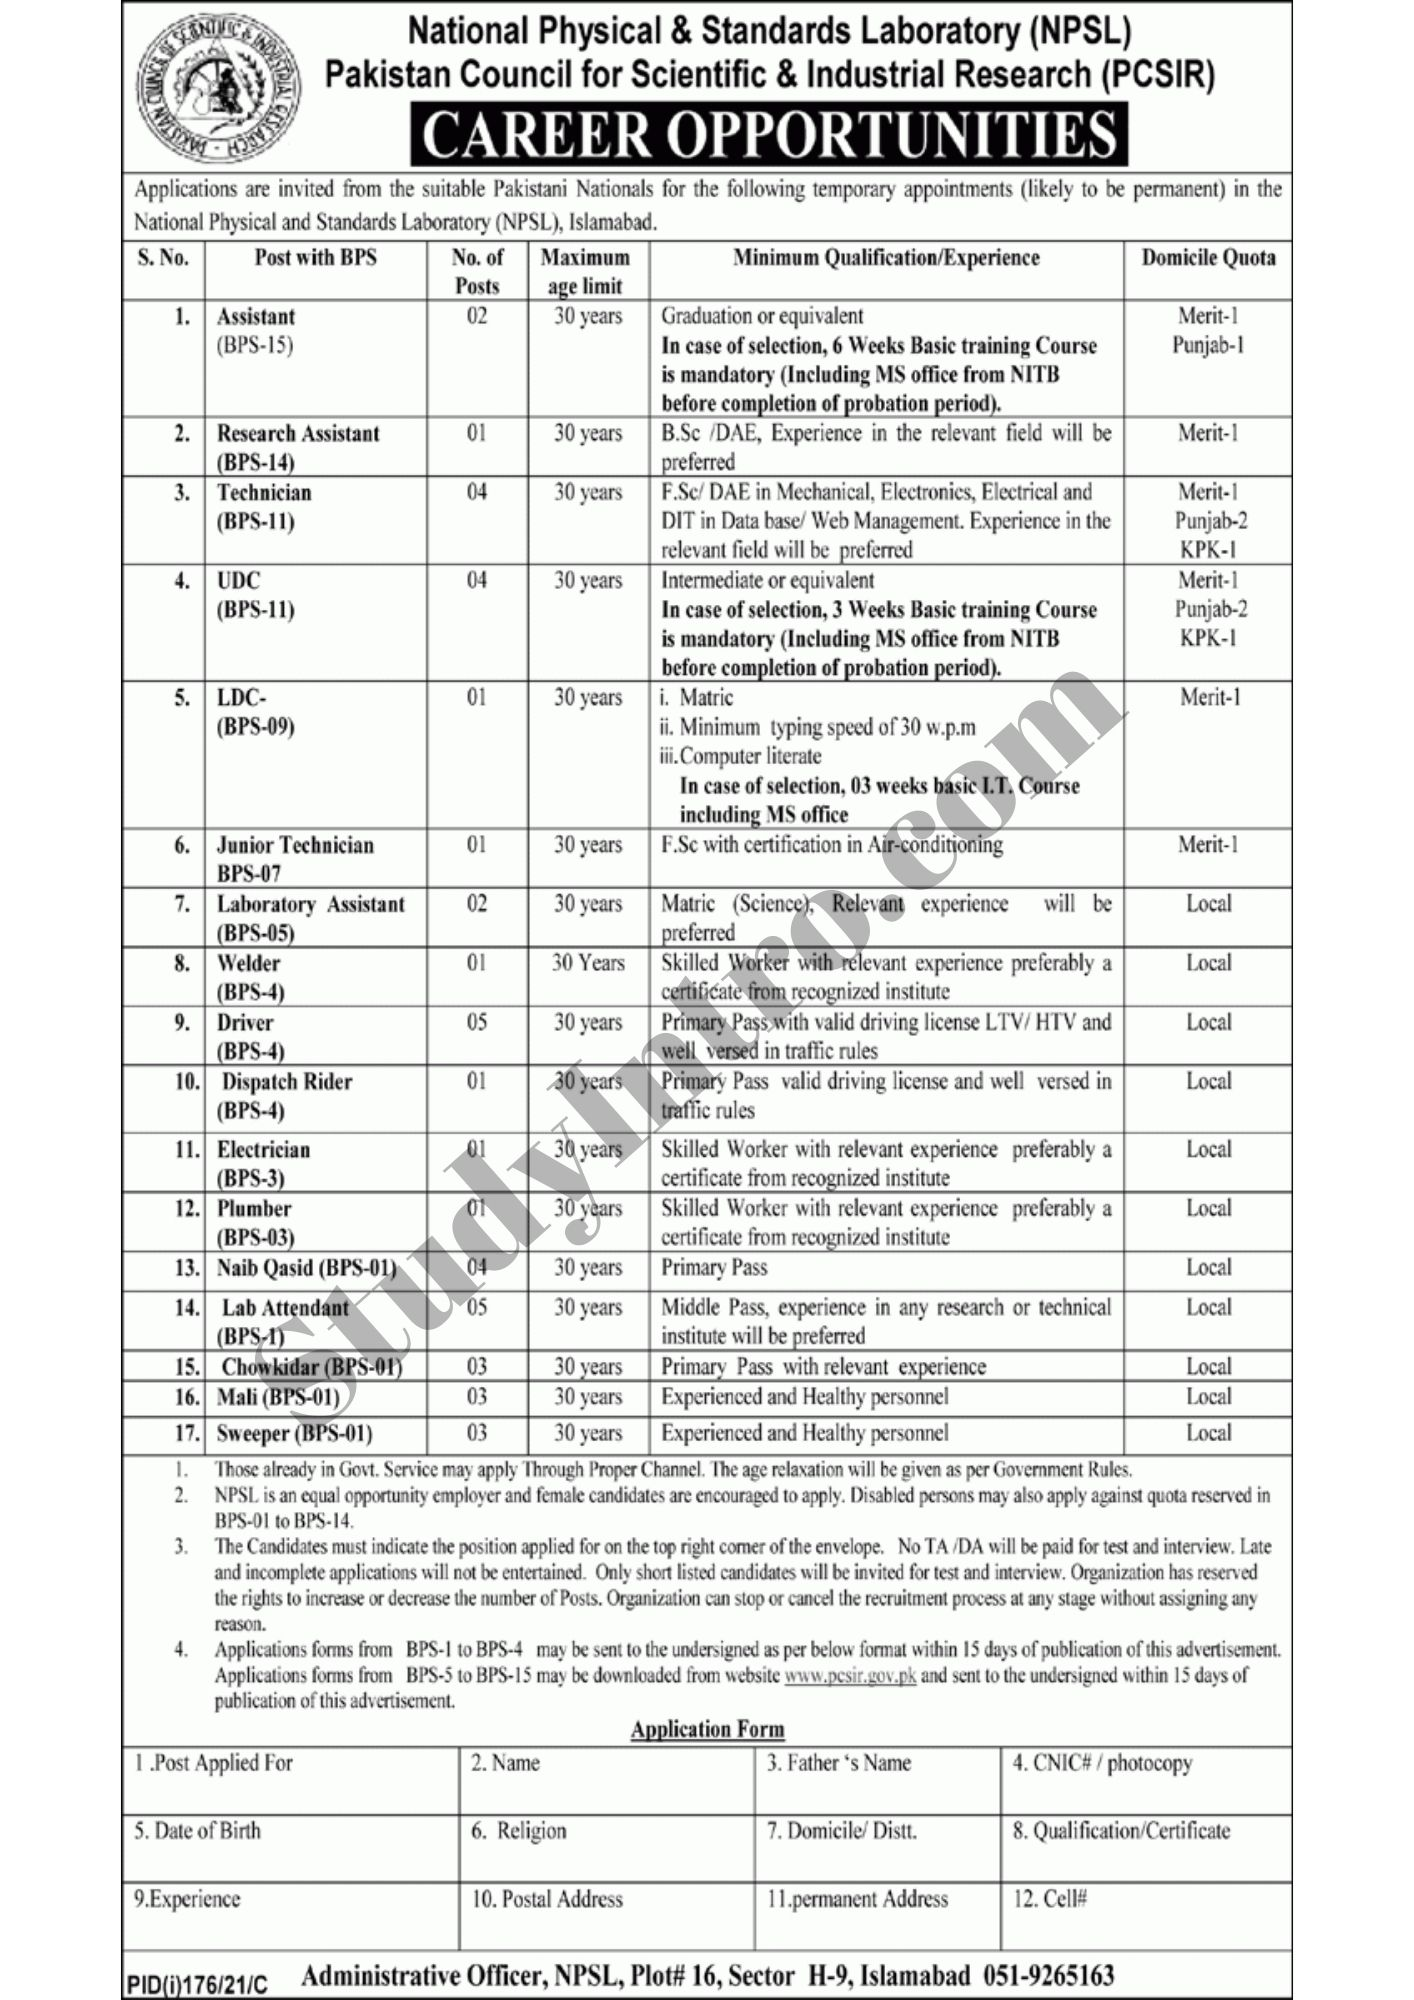 Government Jobs in PCSIR 2021